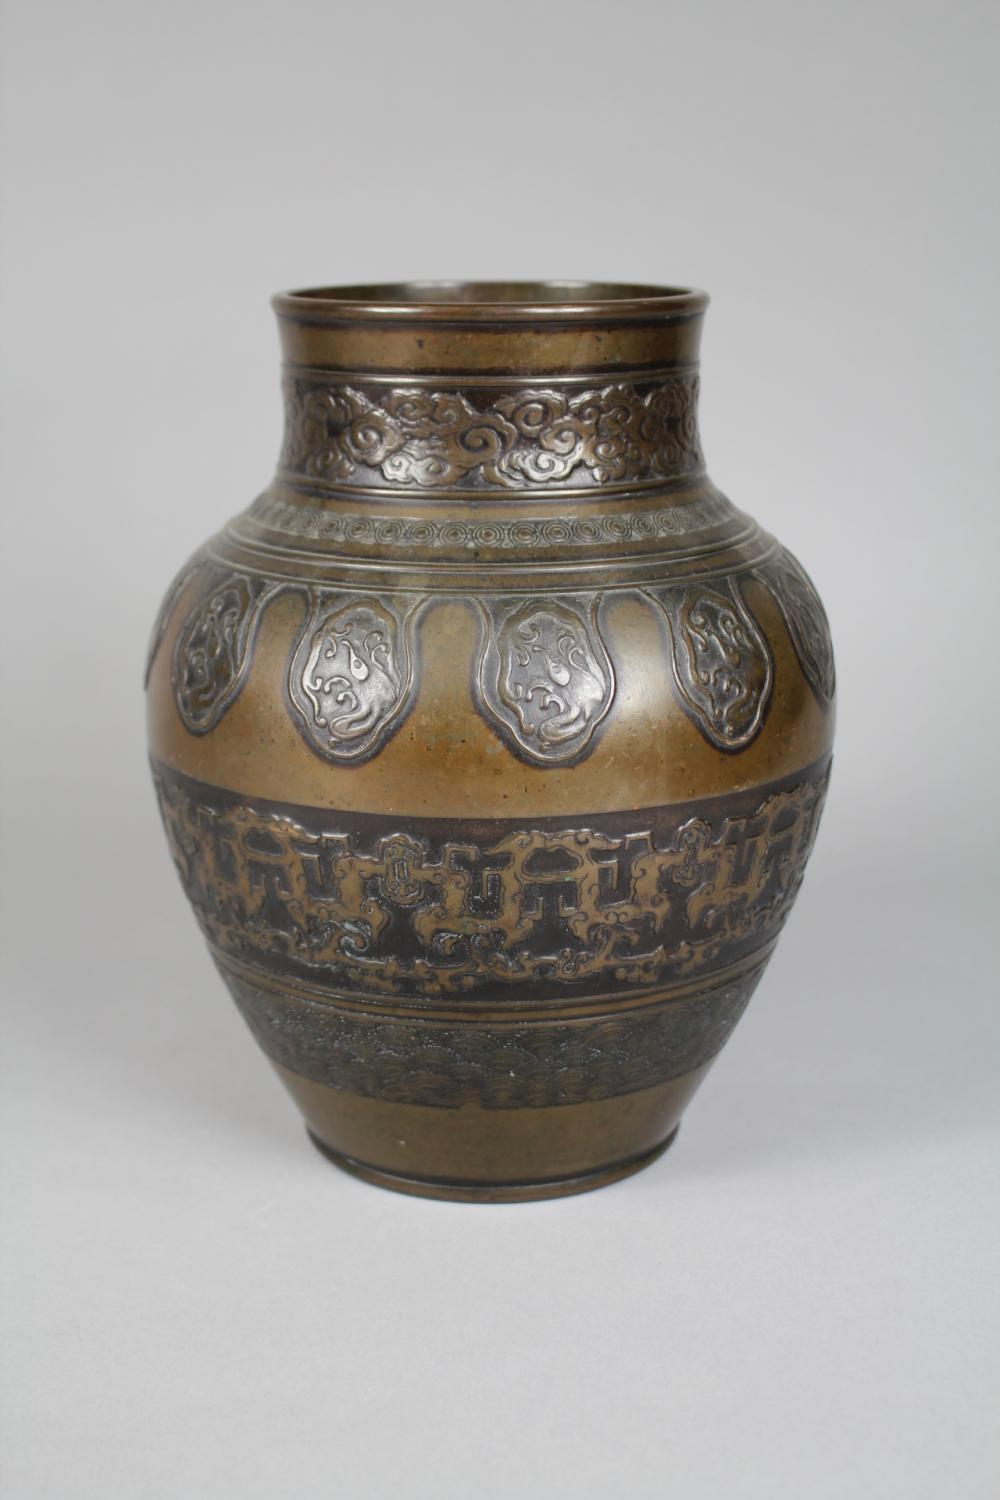 Old Chinese bronze vase, nicely made, approx 28cm H